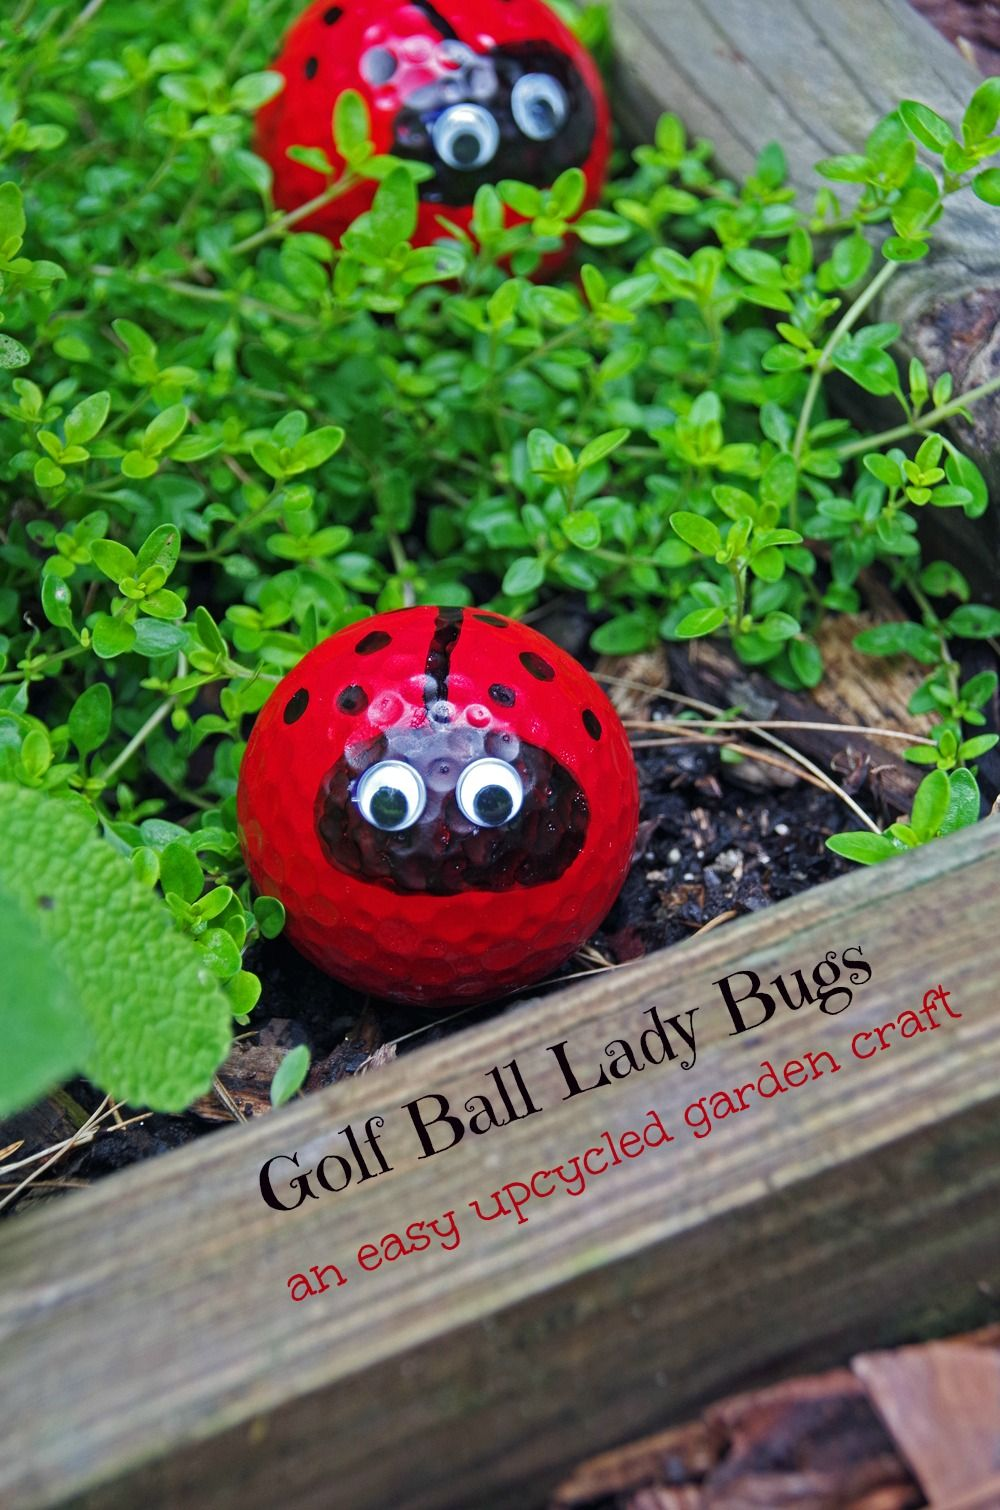 Golf Ball Lady Bug Craft And An Upcycled Garden Craft -1514